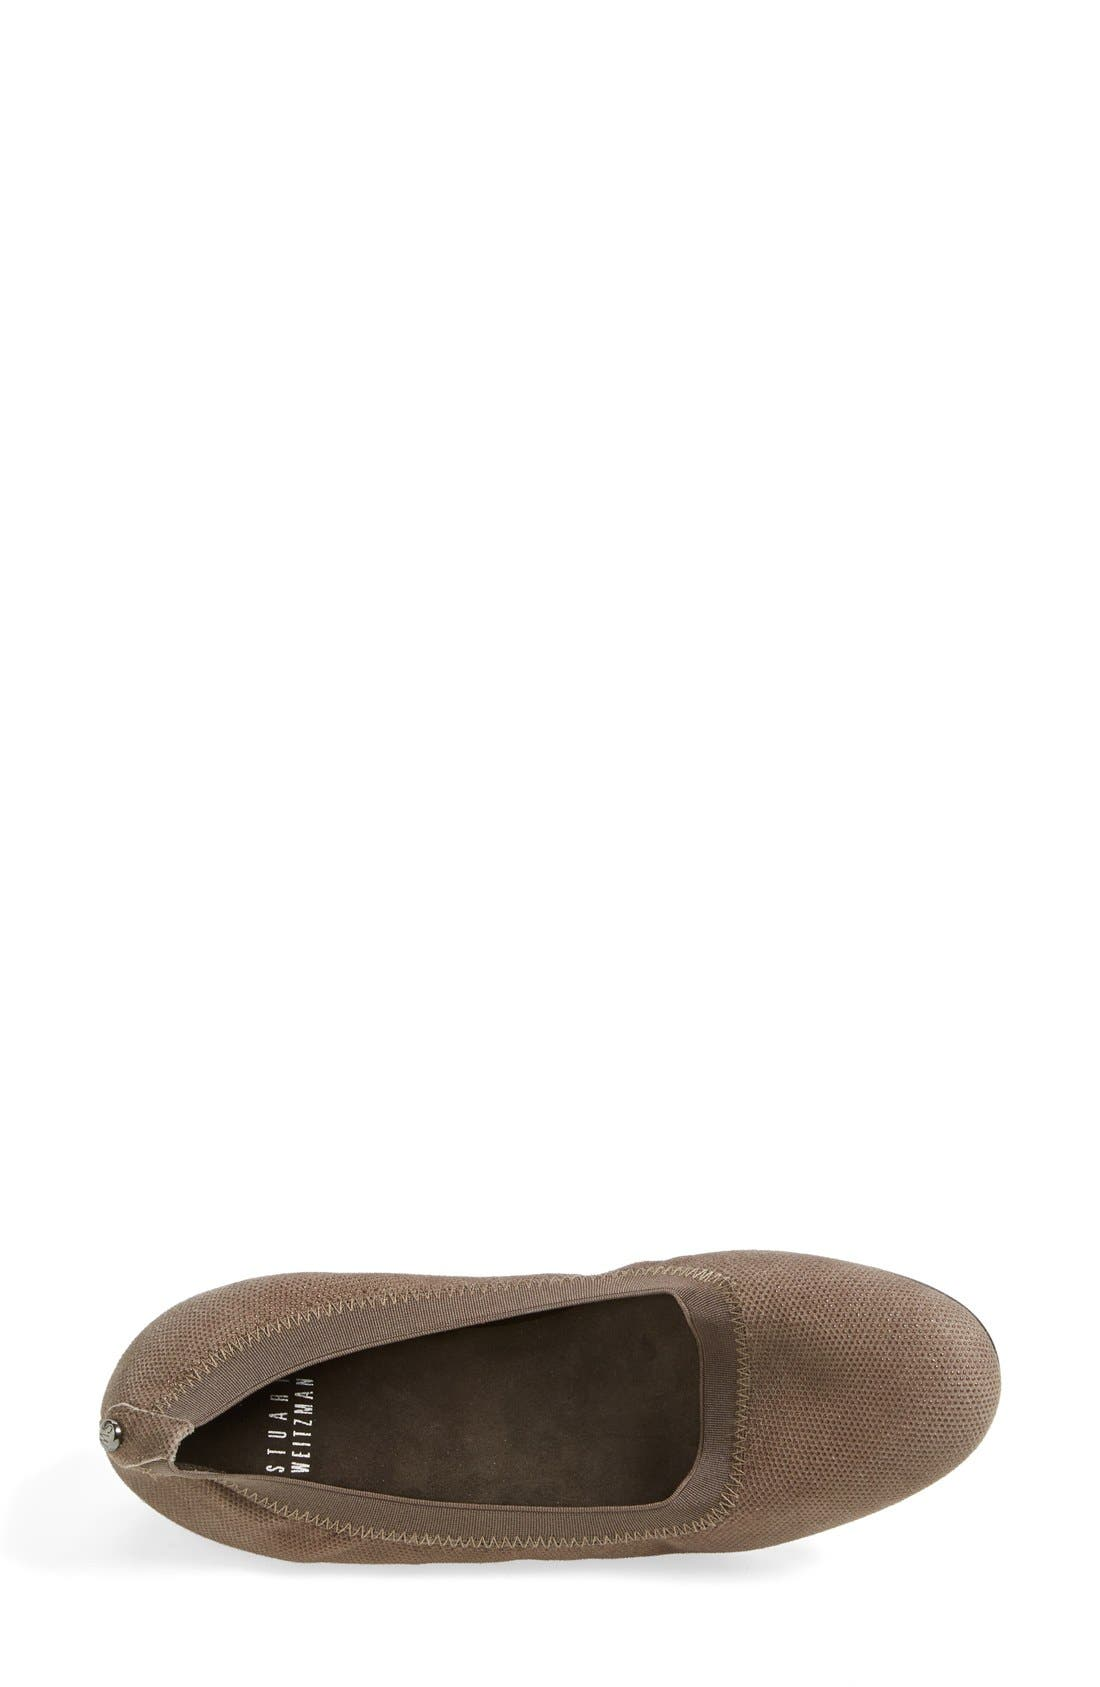 Alternate Image 3  - Stuart Weitzman 'Slipin' Flat (Nordstrom Exclusive) (Women)